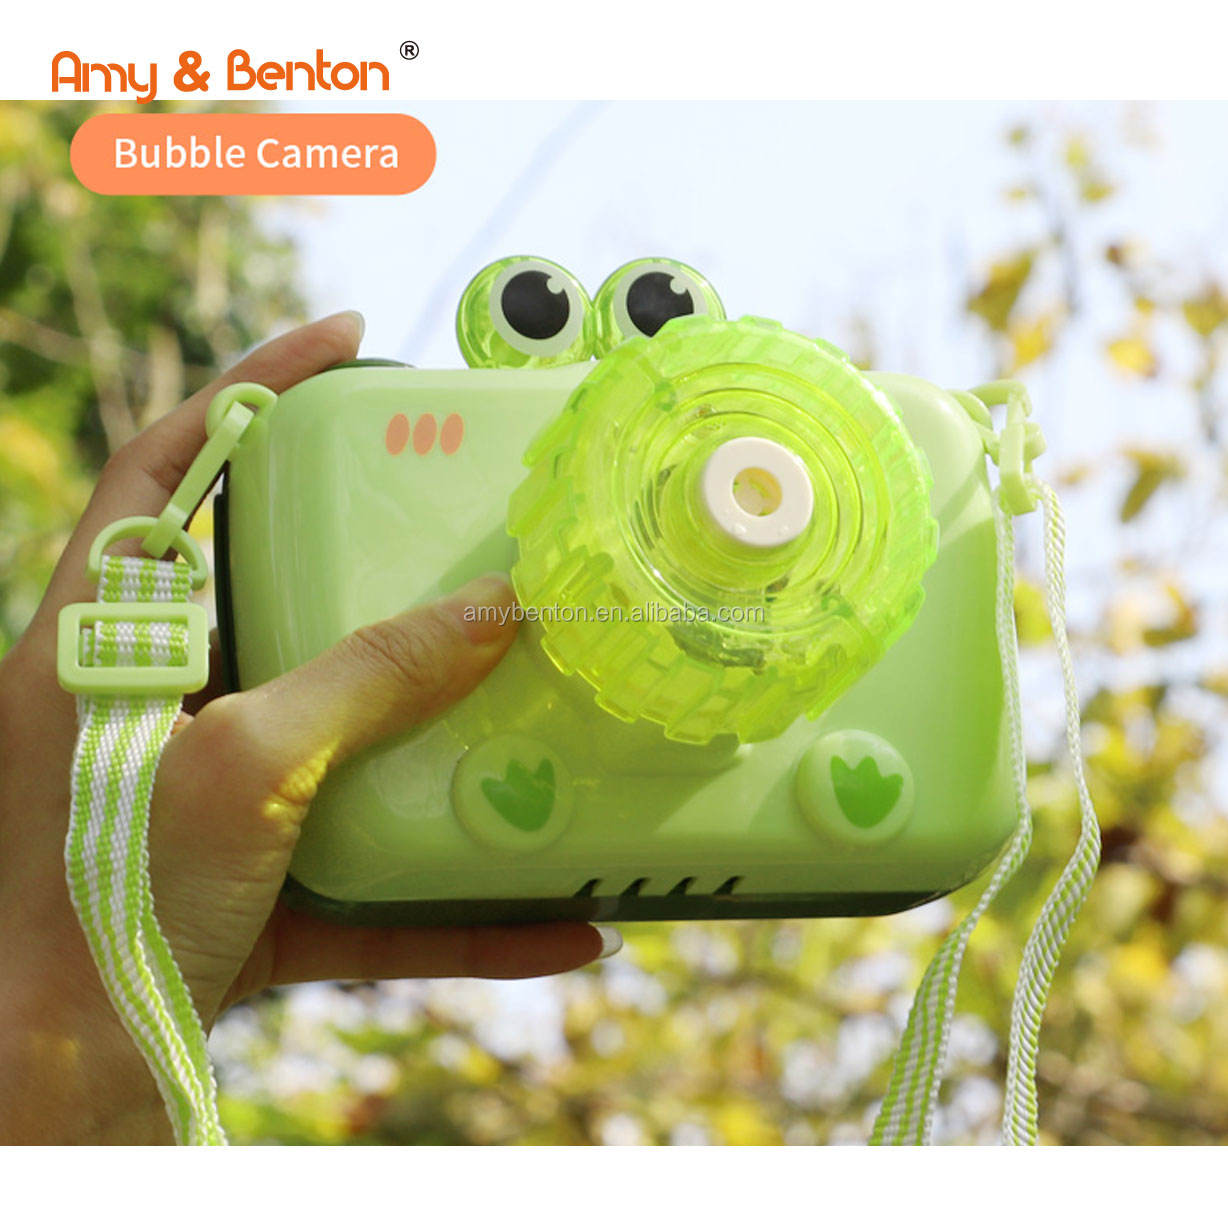 Cute kids bubble maker toys electric frog bubble camera bubble machine with light and music